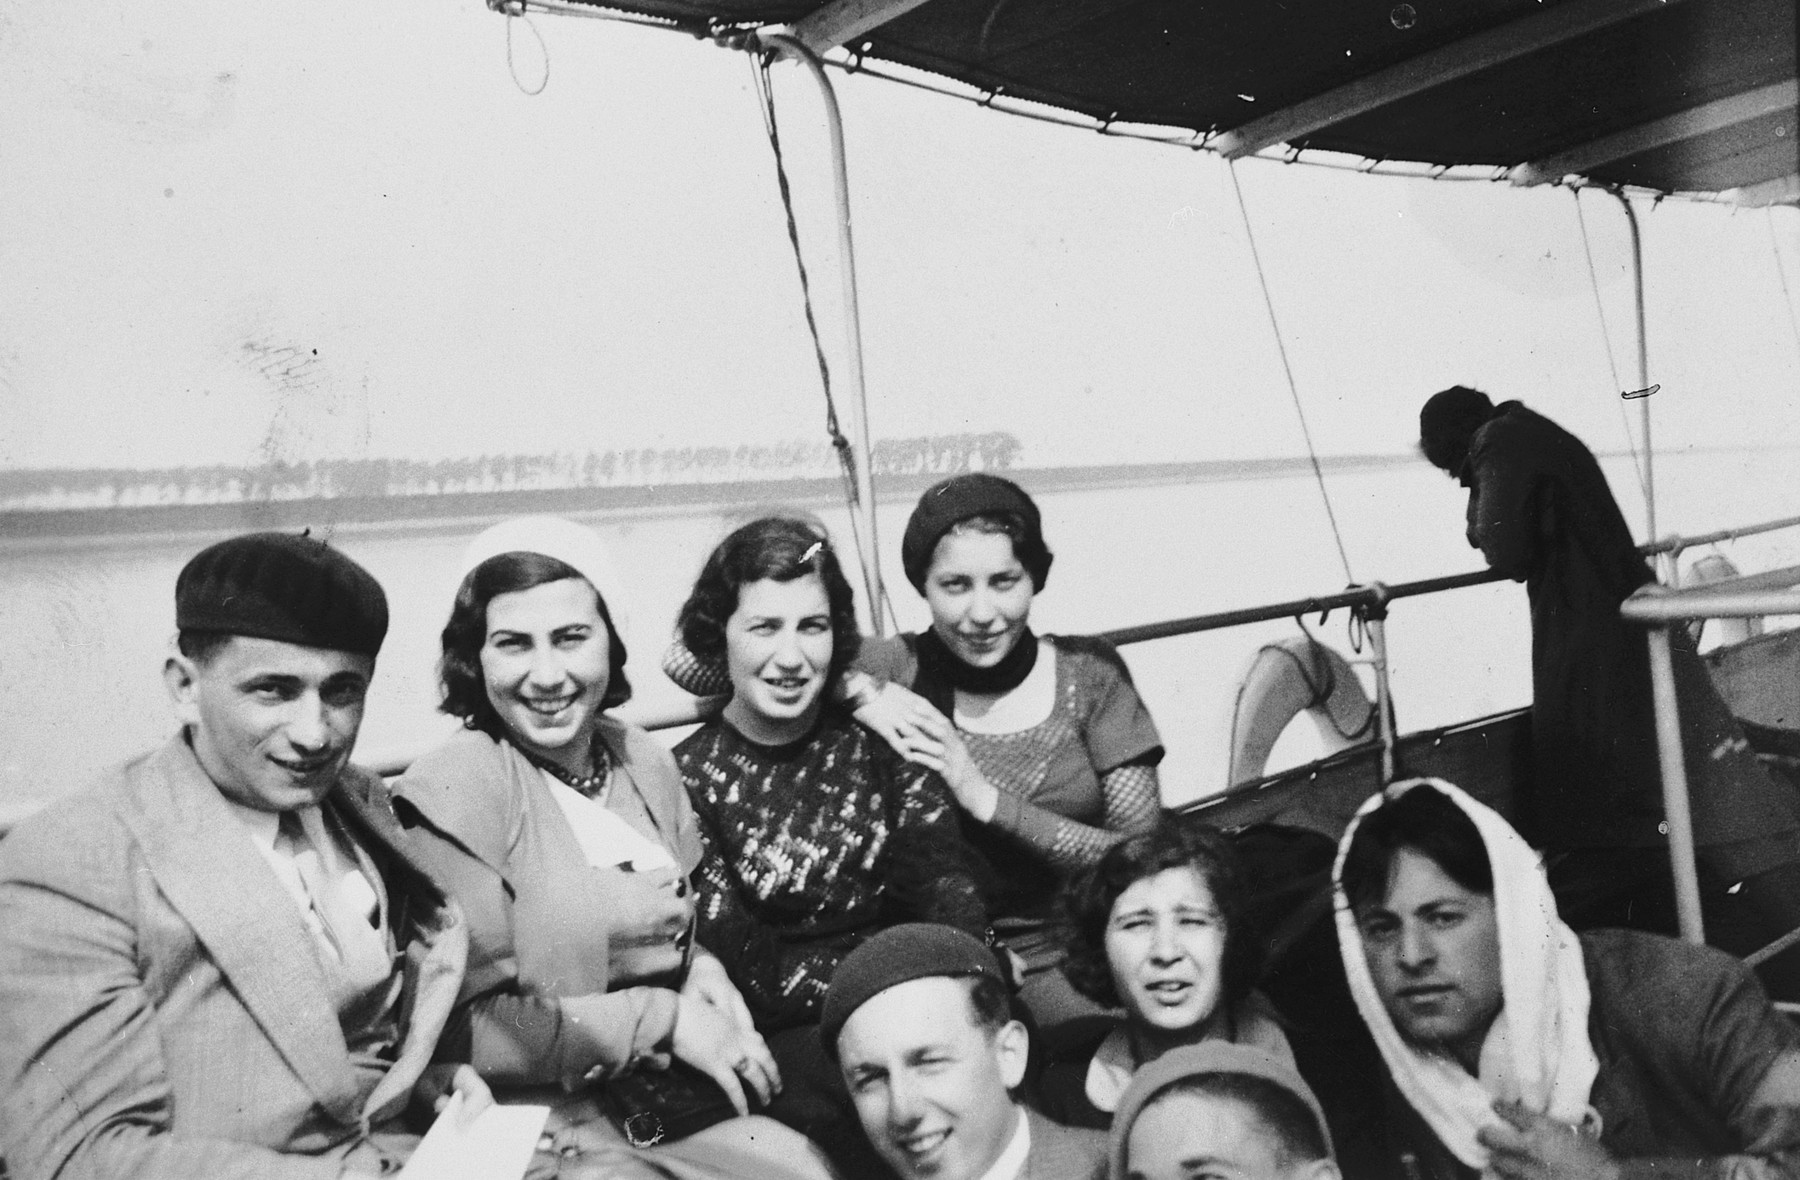 [Students from the Institute of Art in Brussels] enjoy an excursion on a pleasure boat.  Among those pictured are Esther Lurie.